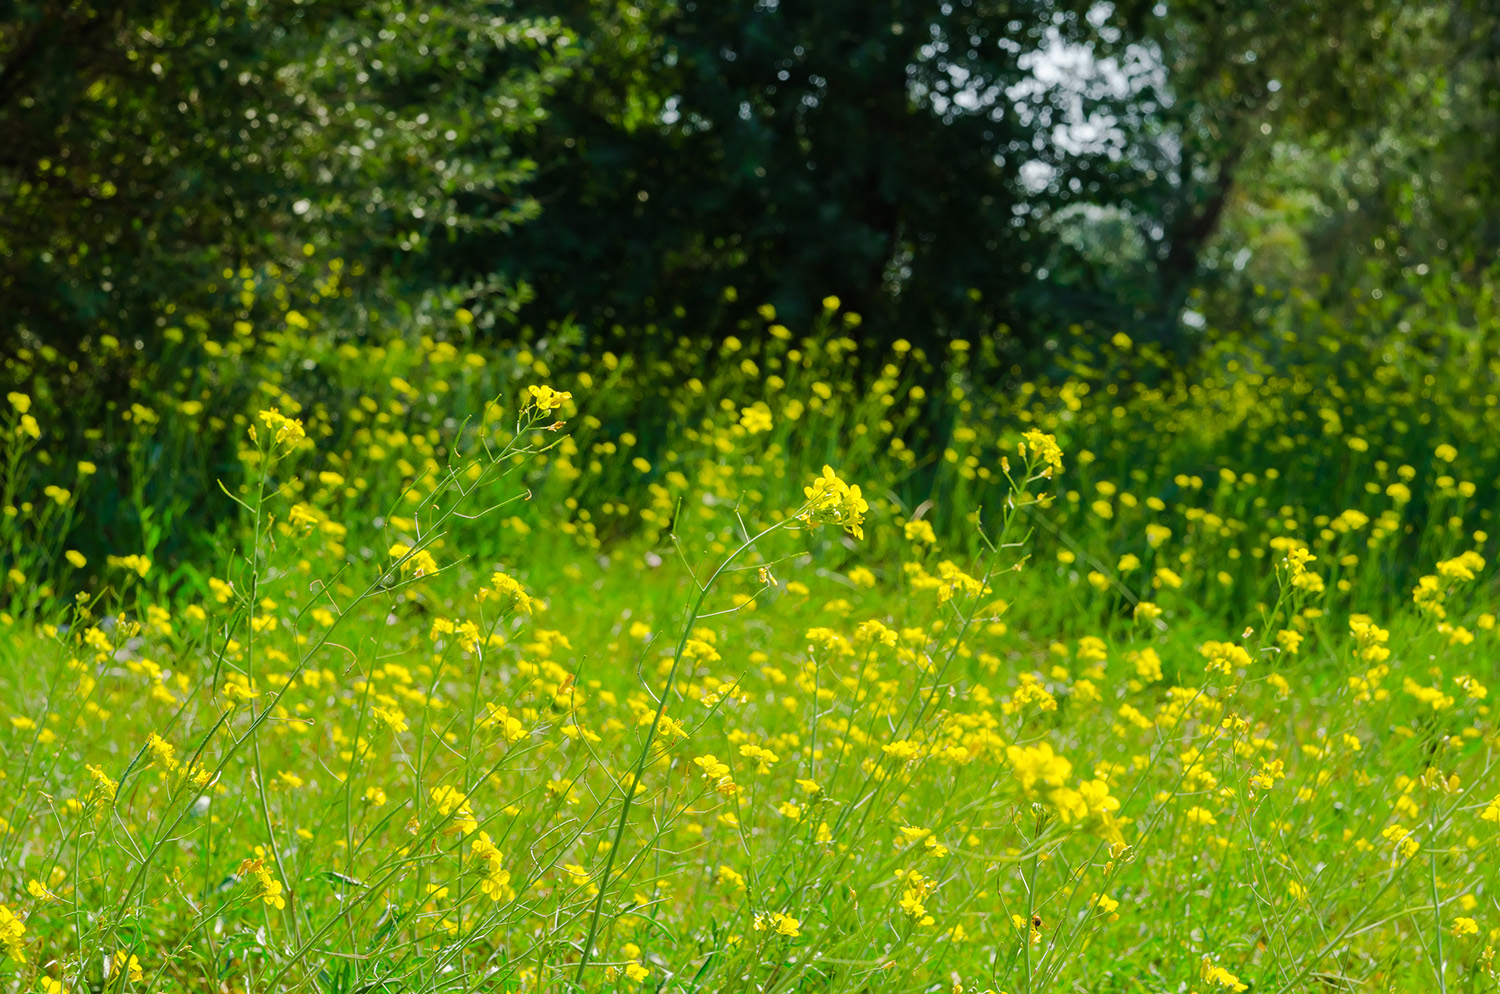 Meadow of yellow flowers with gossamer. Beauty nature background